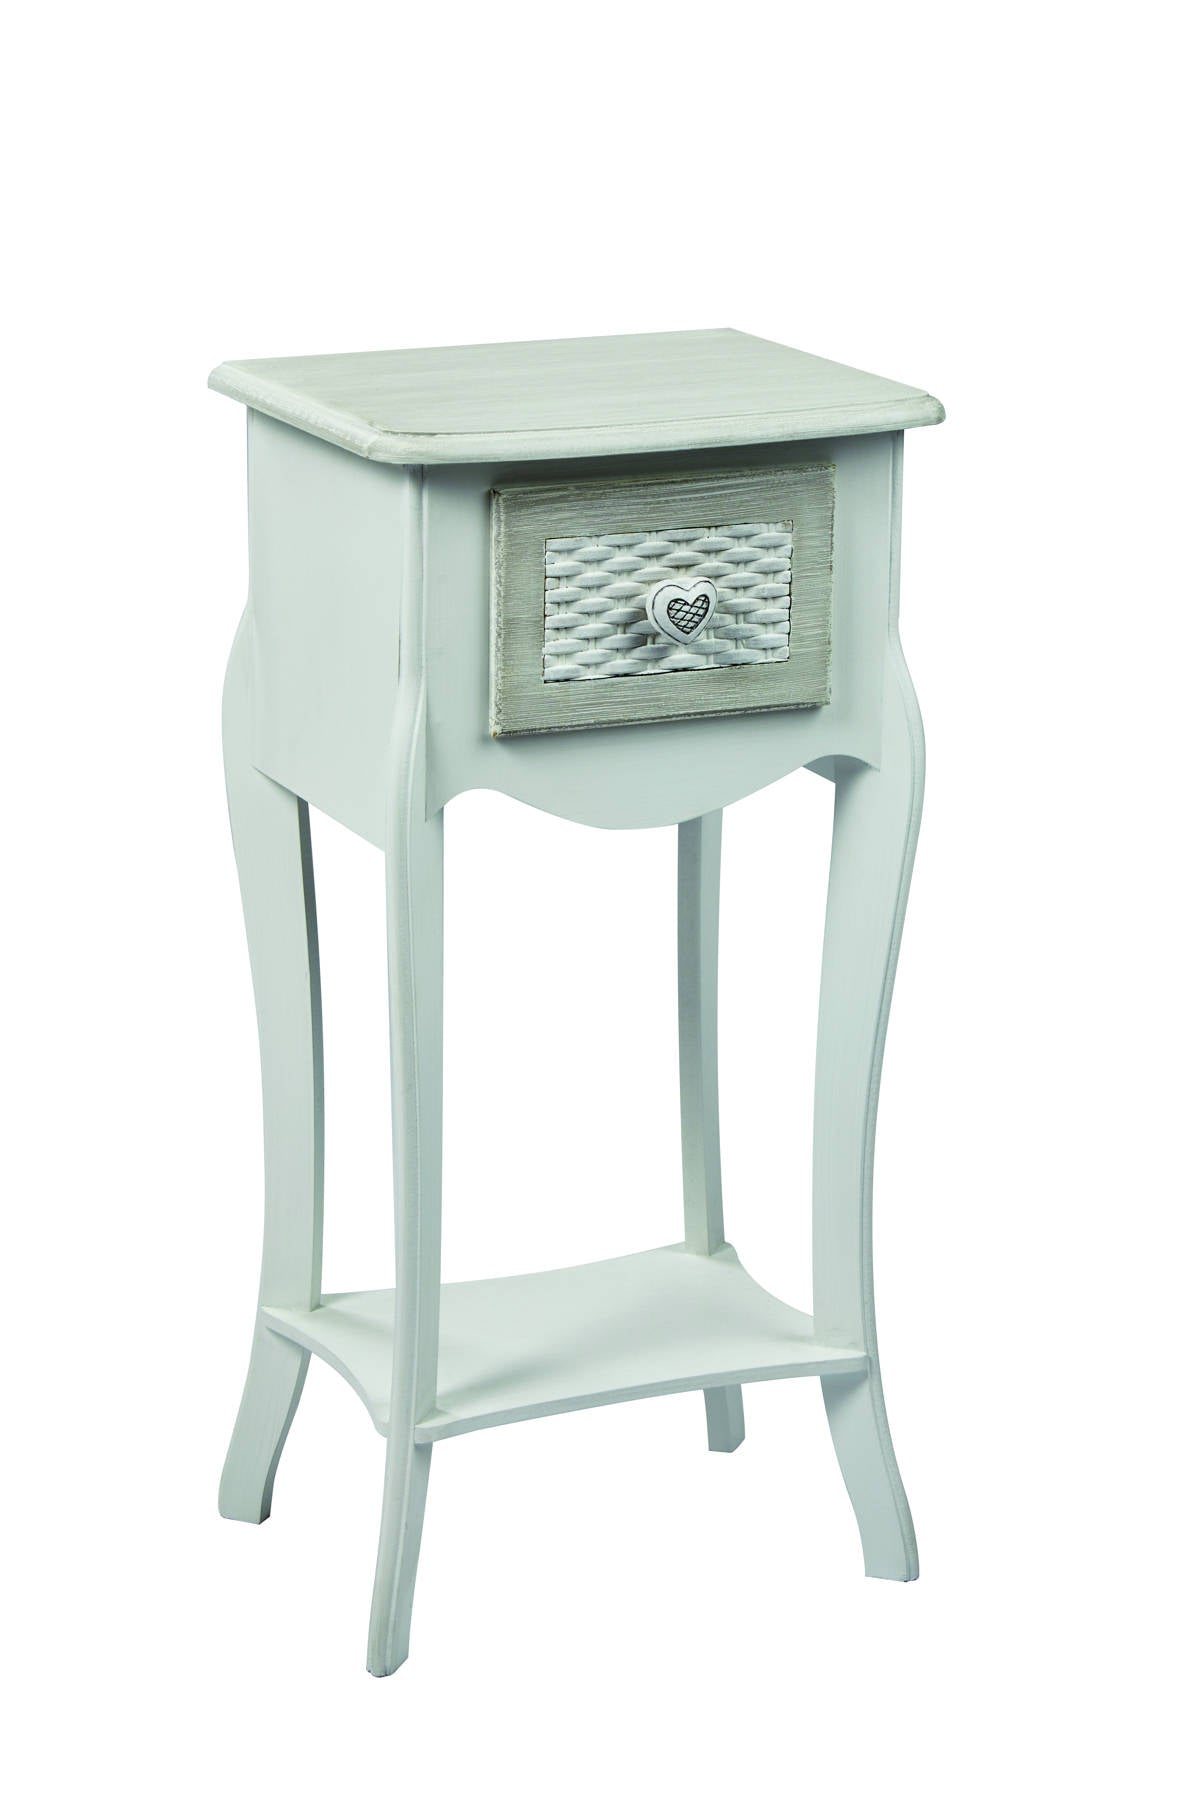 Lorient 1 Drawer Bedside Cabinet - Ezzo